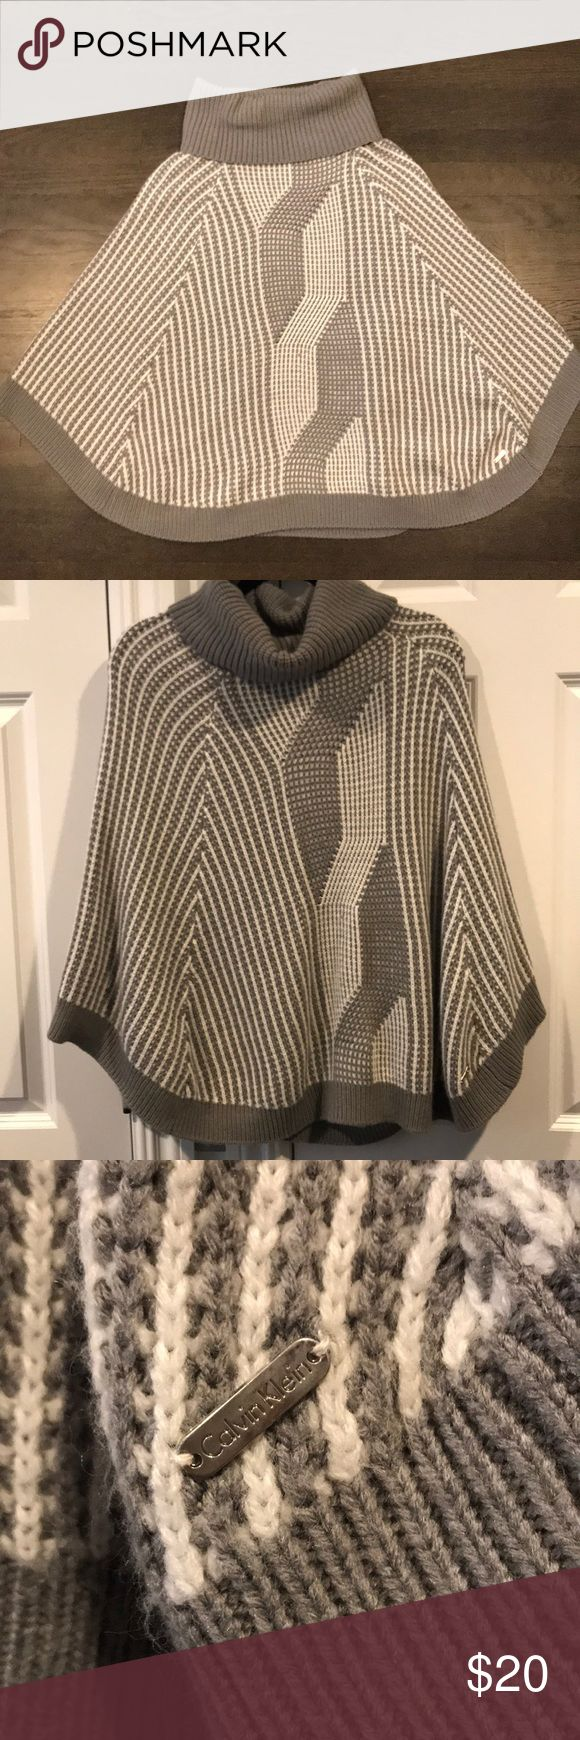 "Calvin Klein cowl neck poncho Calvin Klein gray and white cable knit poncho. Cozy and warm! Pair with a white long sleeve, jeans or leggings and booties for a cute Fall/Winter outfit ☺️ Labeled as ""one size"" I wear a small/medium. Calvin Klein Sweaters Shrugs & Ponchos"